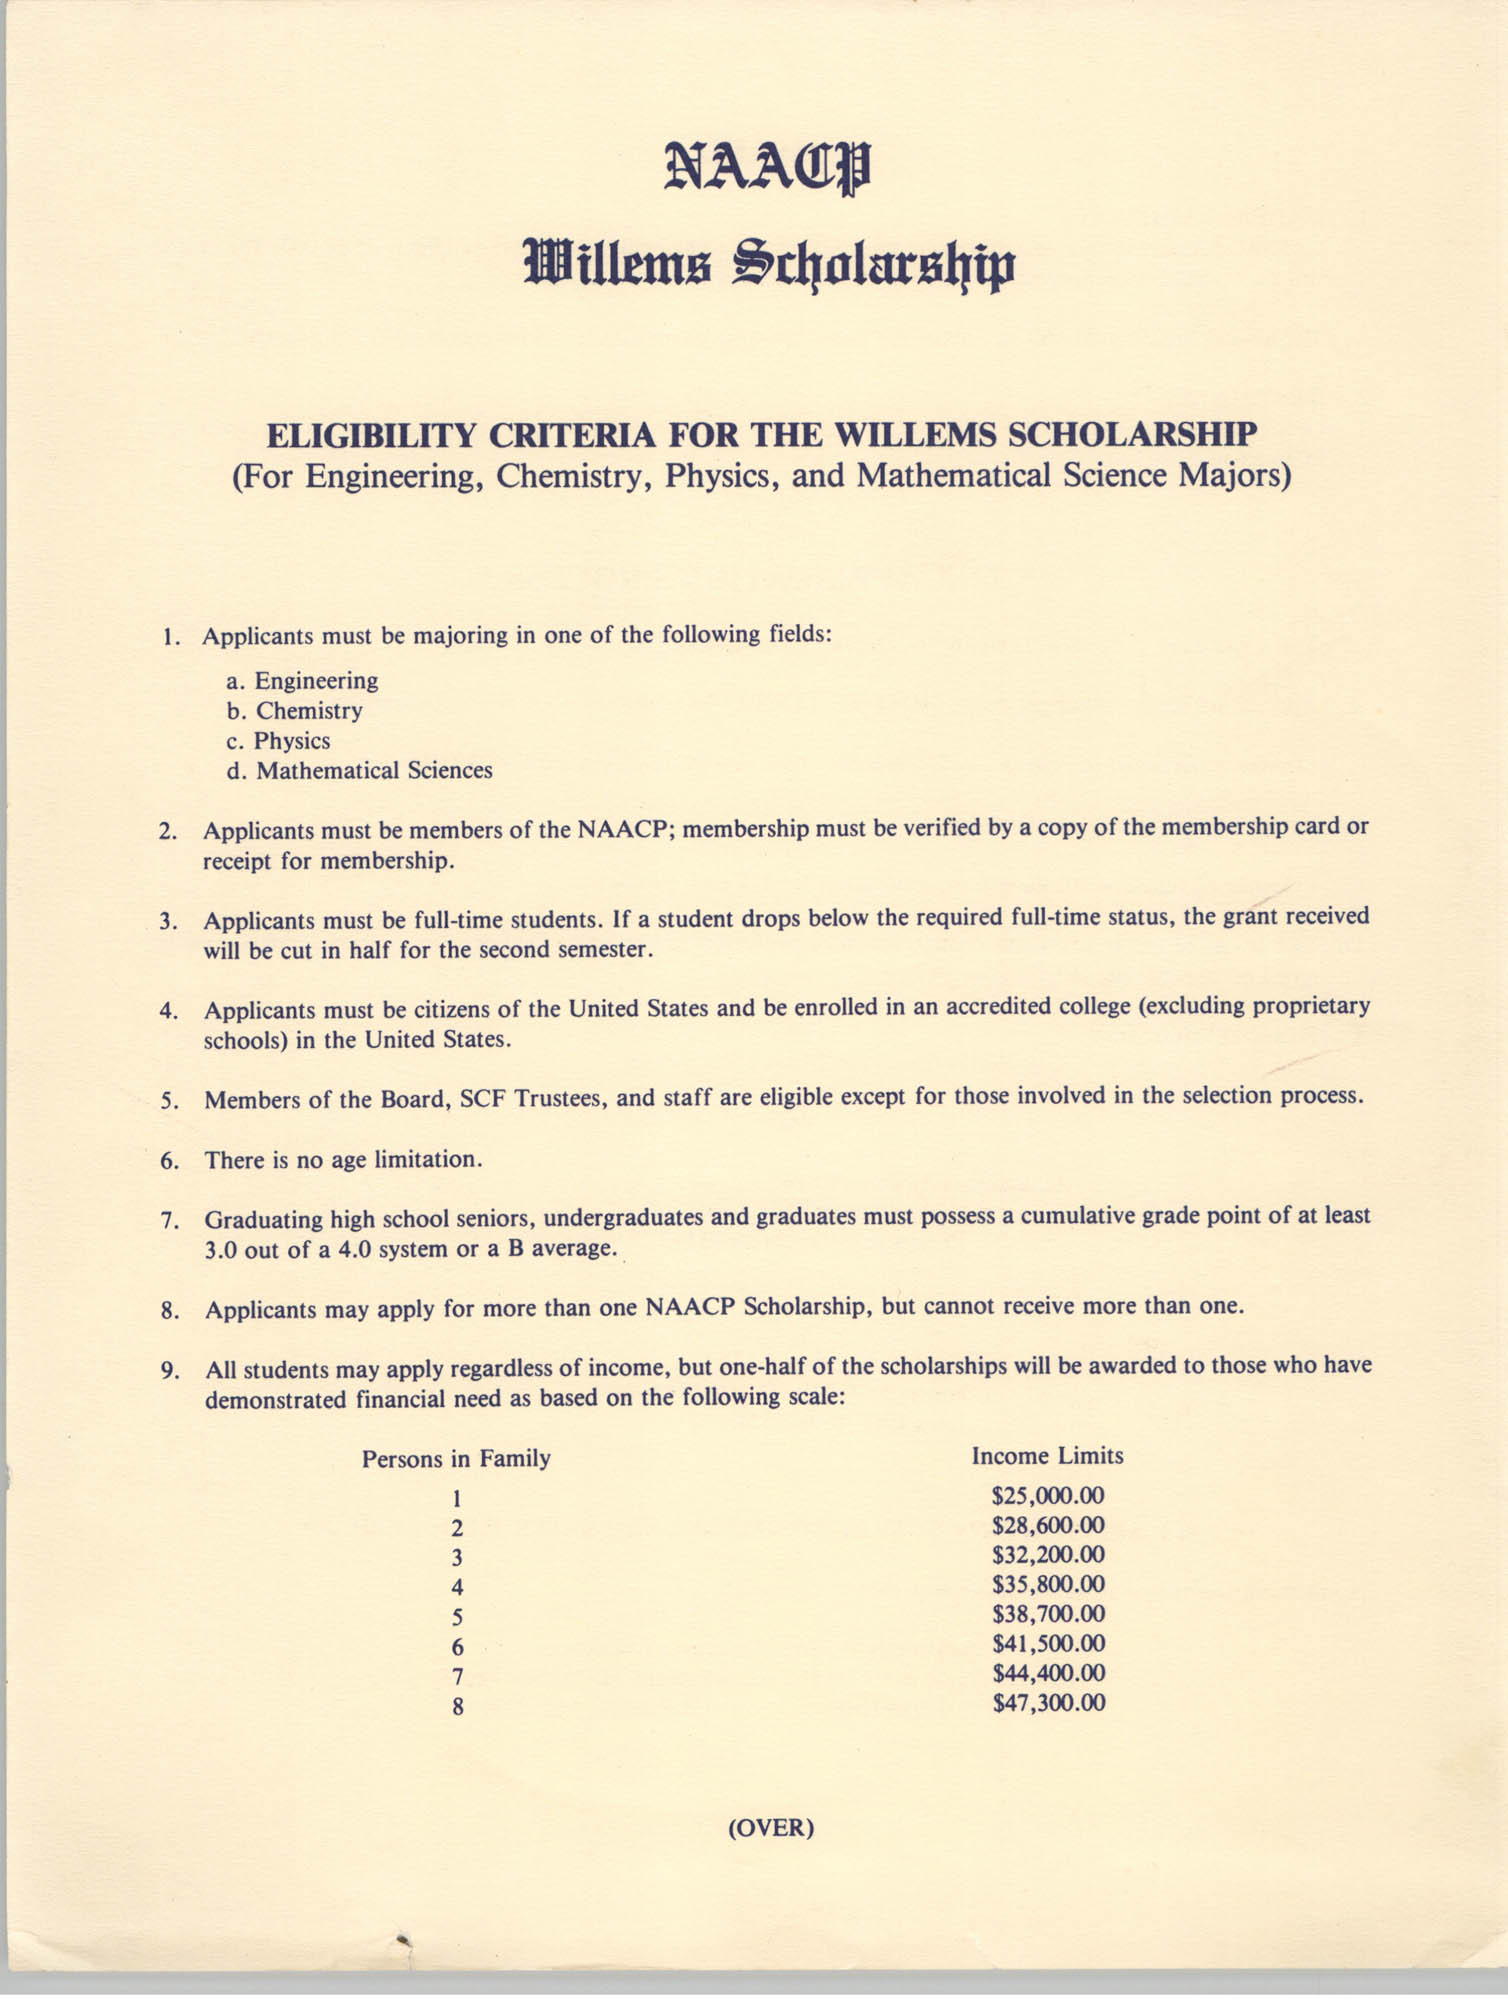 Application Instructions, NAACP Willems Scholarship